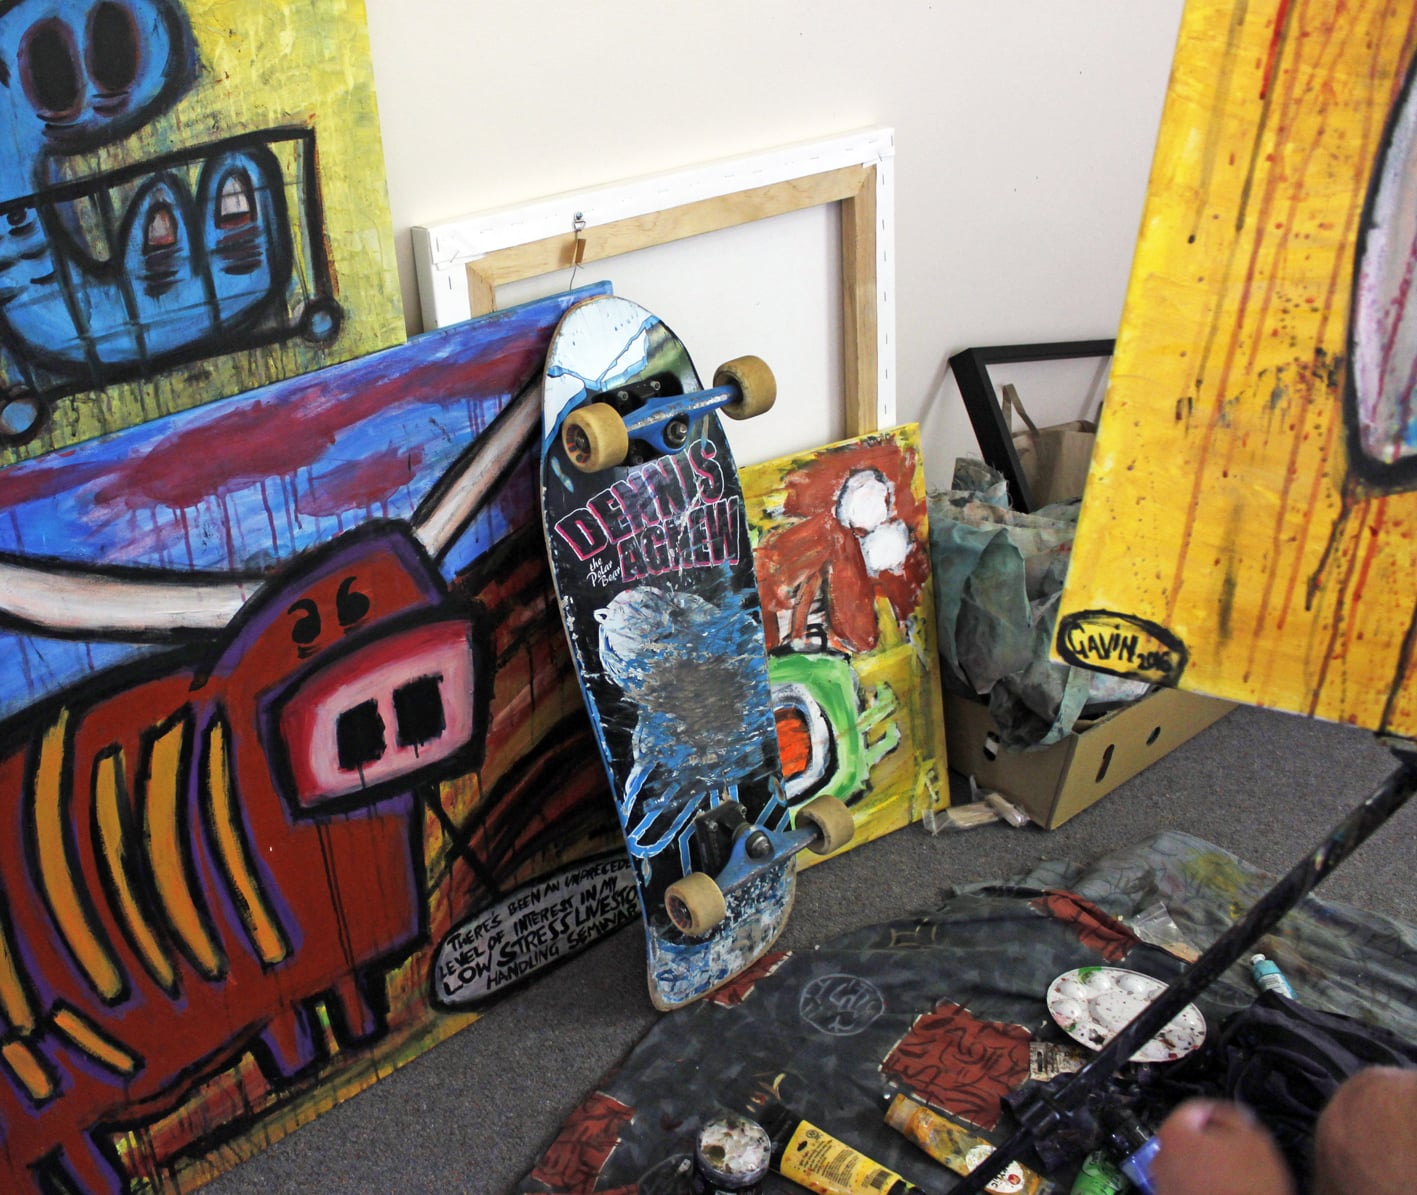 Australian artist Gavin Coote, studio visit - The Corner Store Gallery, photograph by Madeline Young